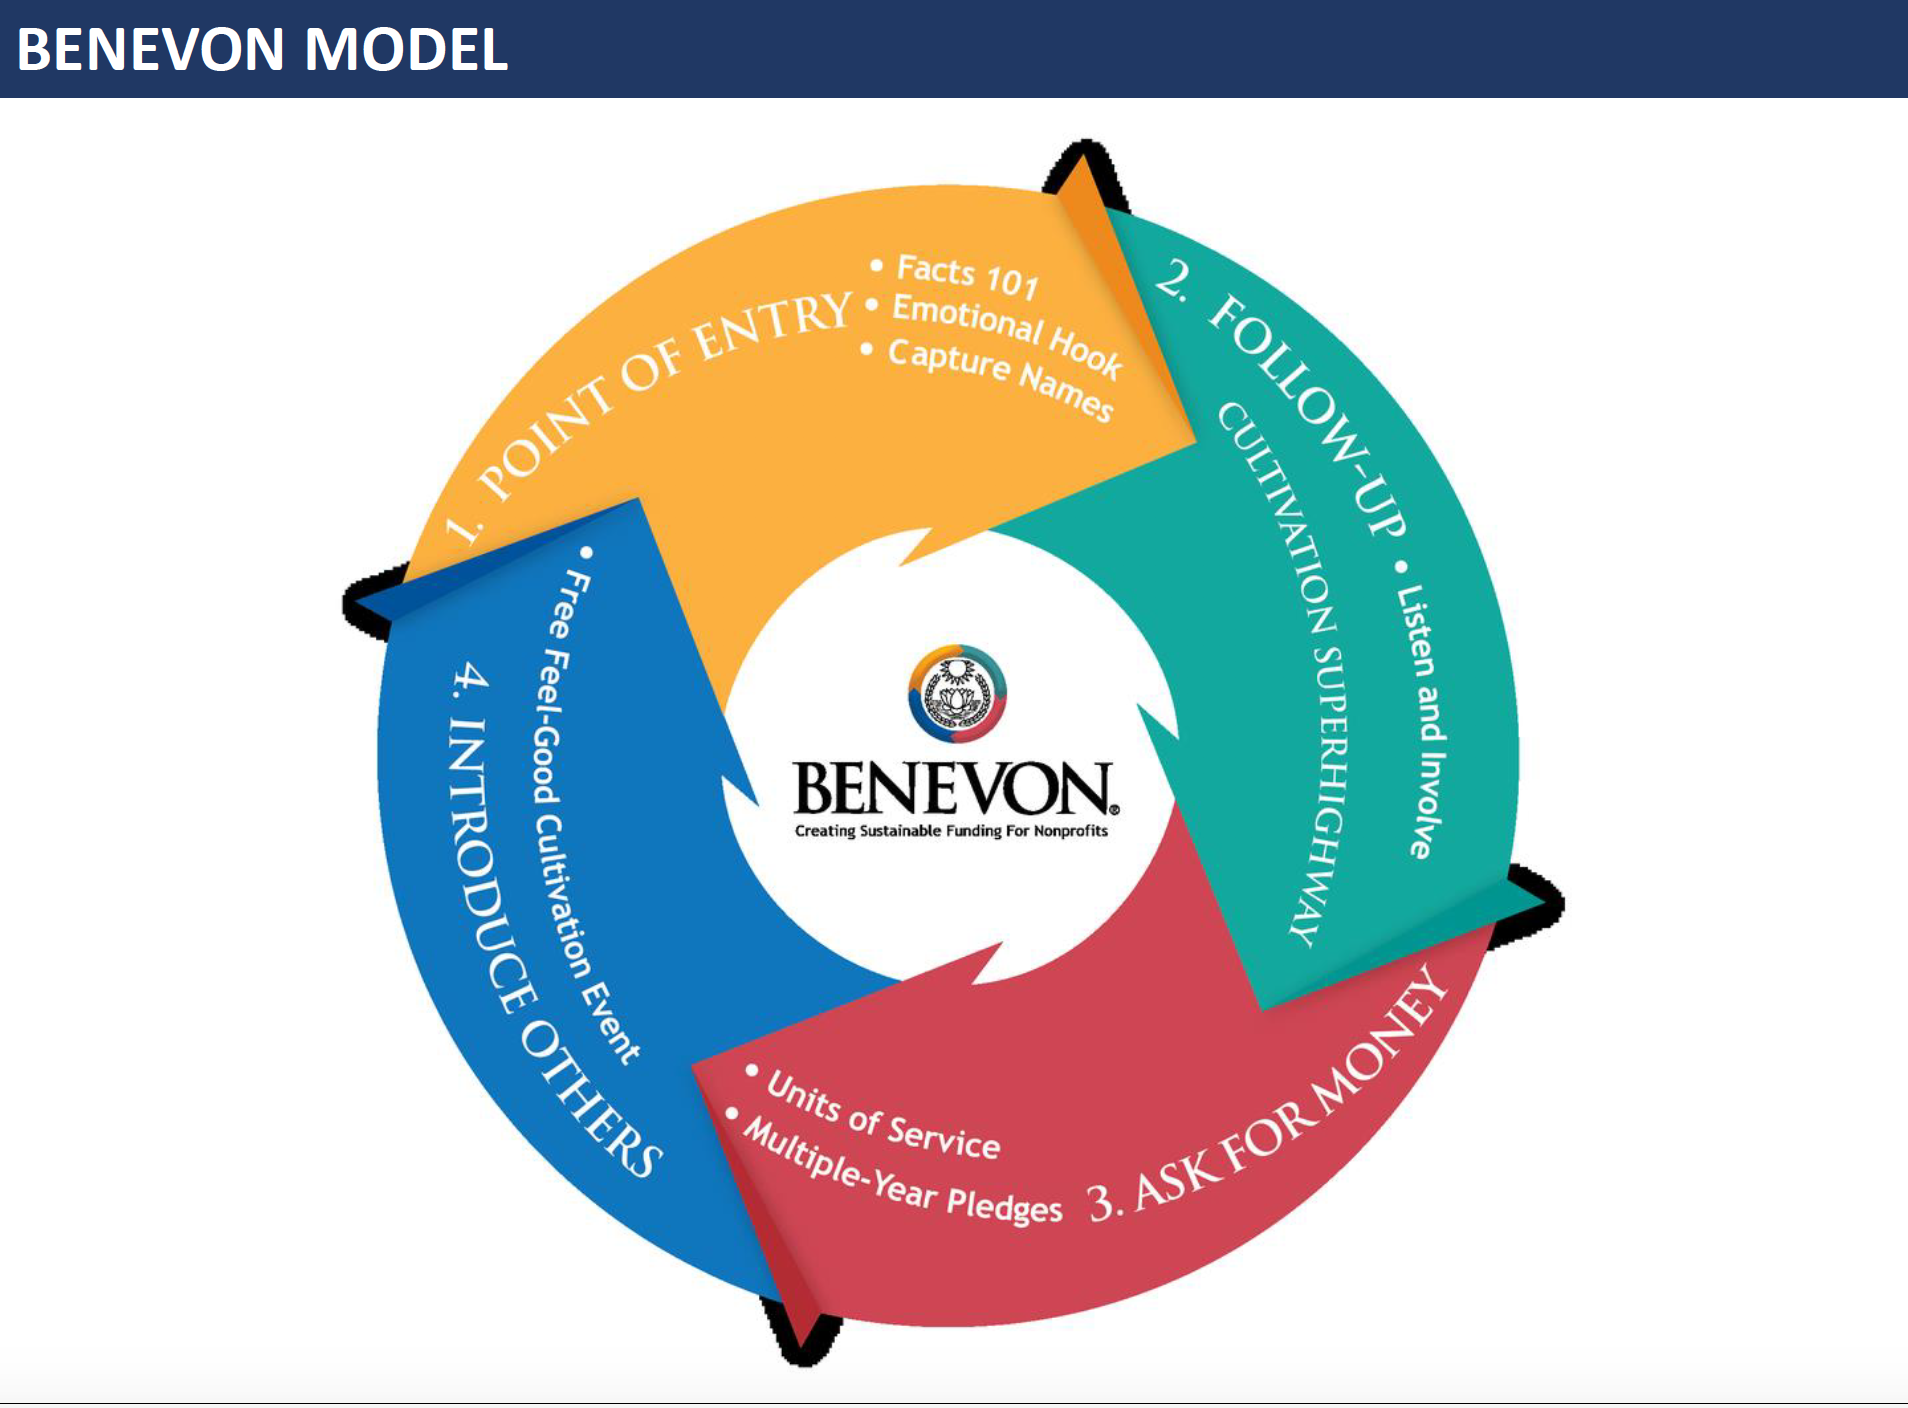 Webinar: Elizabeth Moulthrop & Pamela Palumbo On The Benevon Model – September 2017